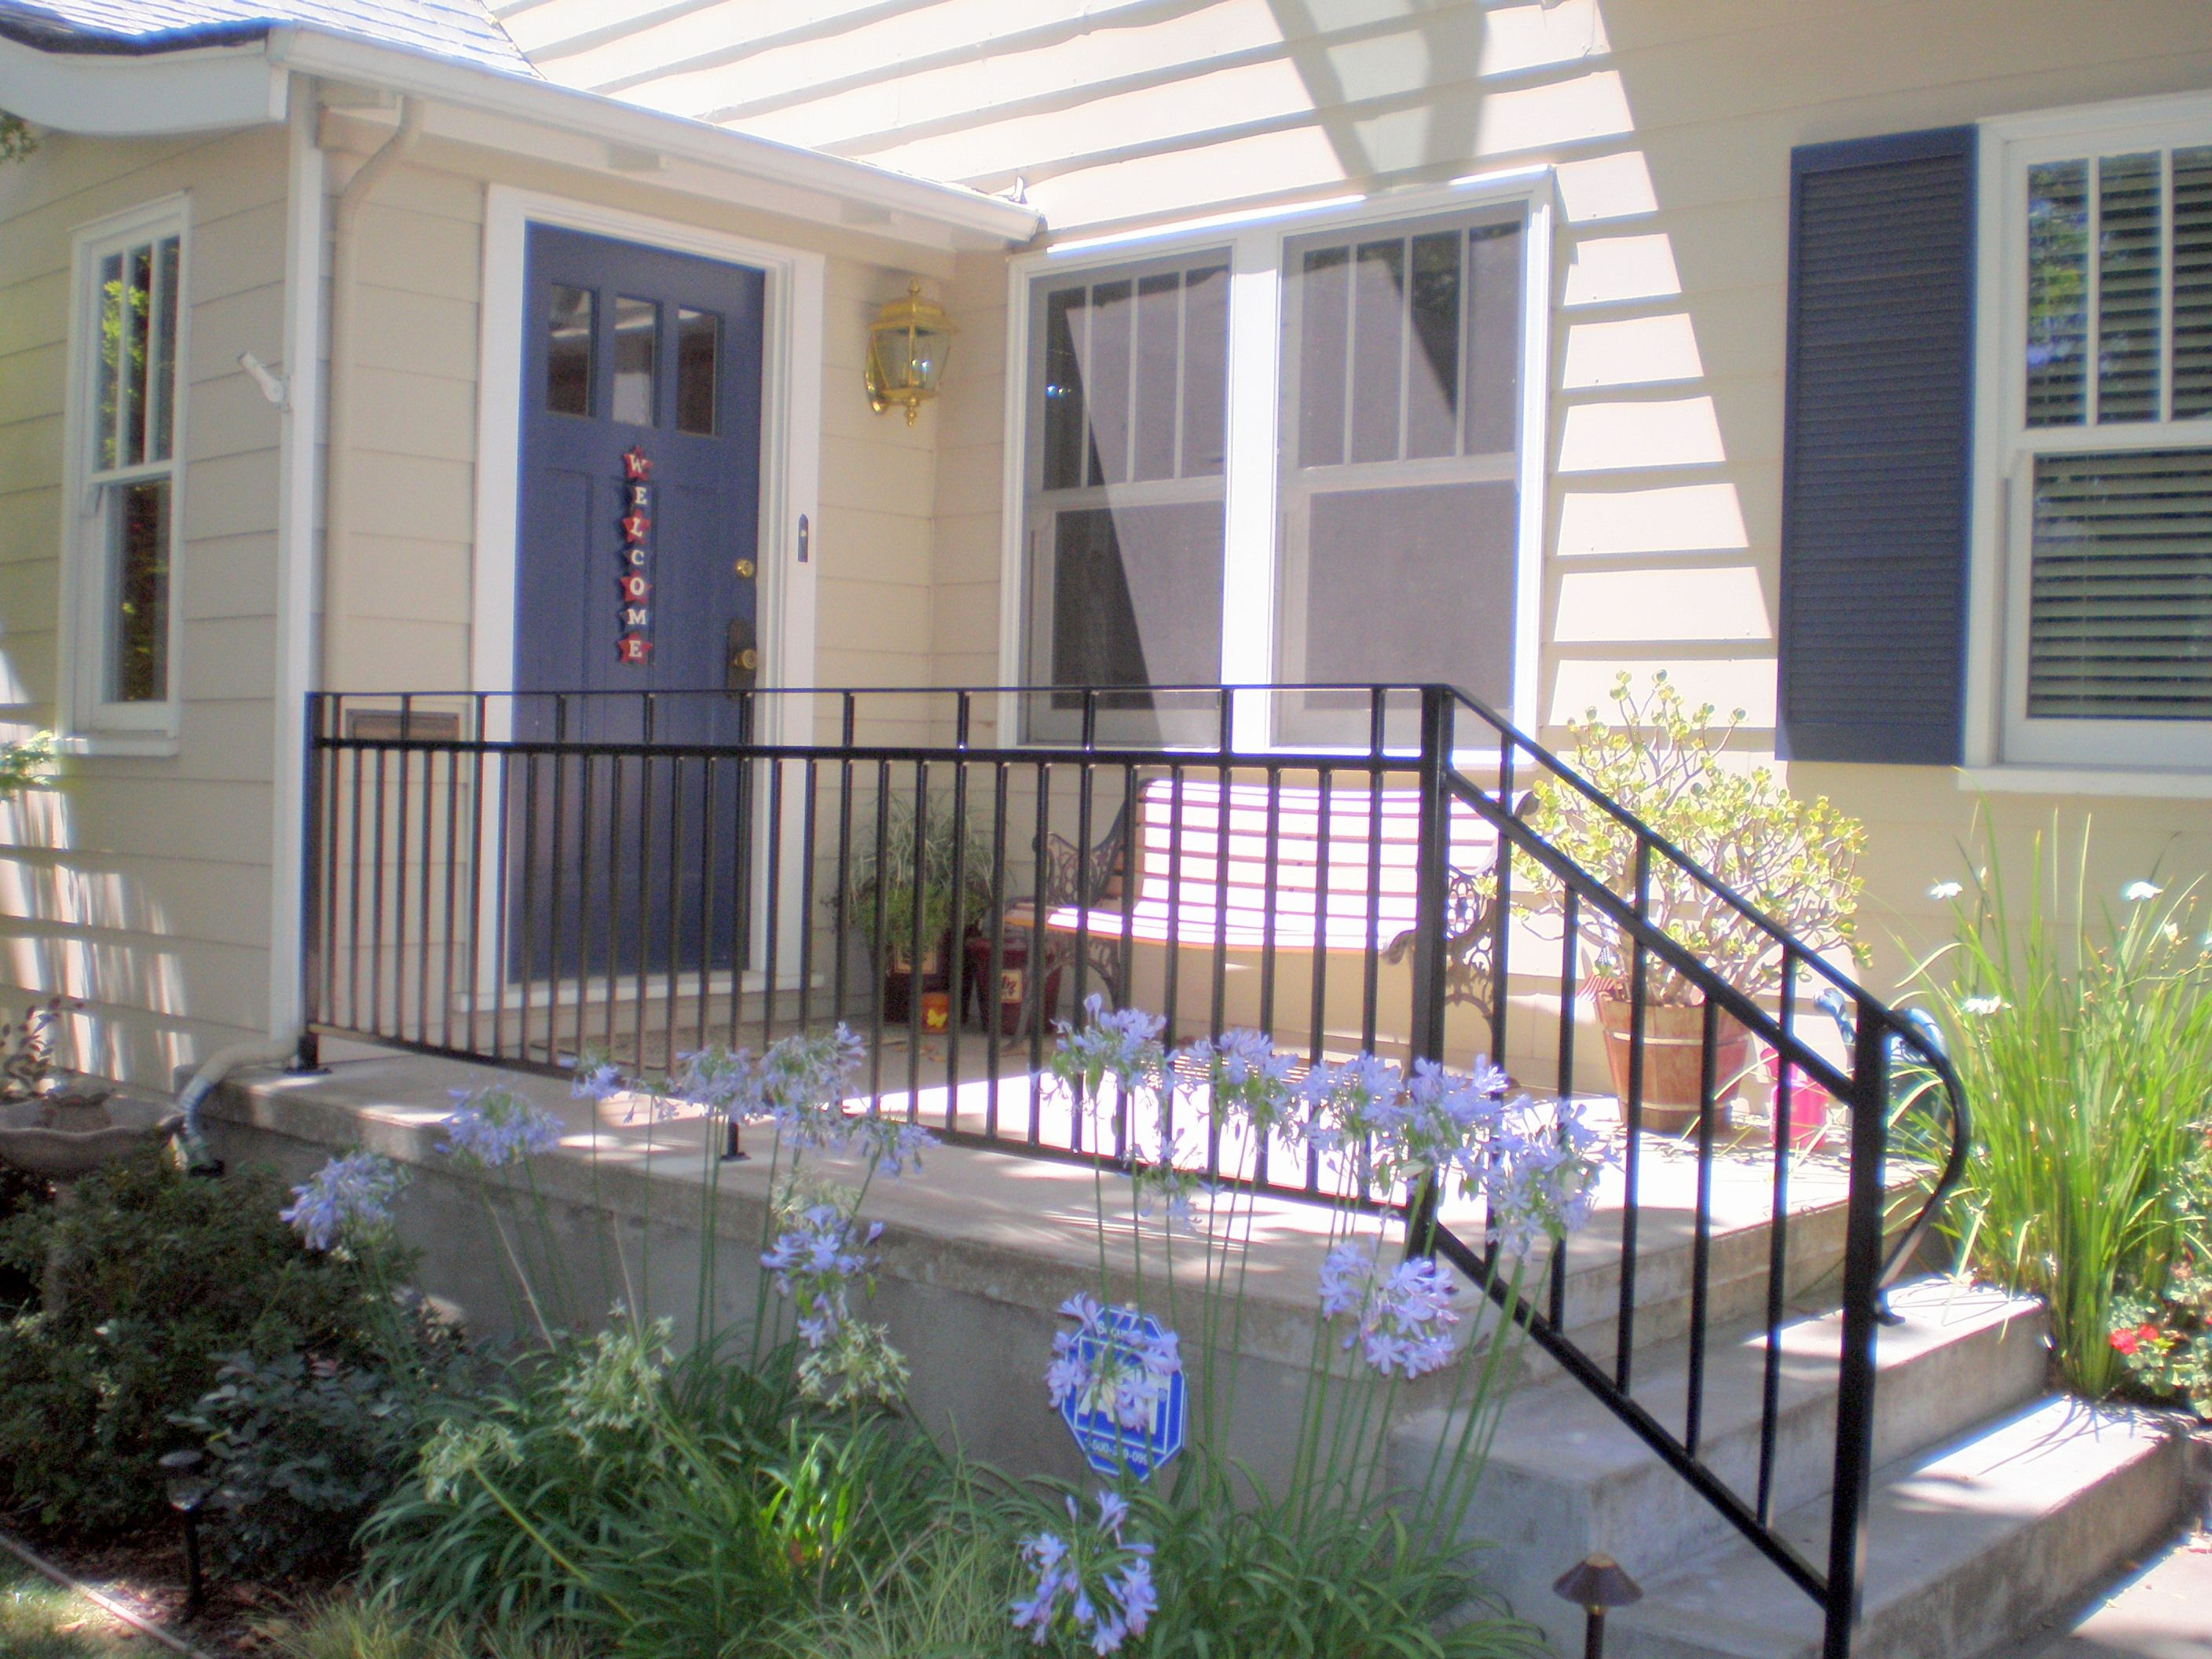 Superior Raised Concrete Patio With Railing. Iron Patio Railing Wrought Porch  Railings Raised Concrete With P